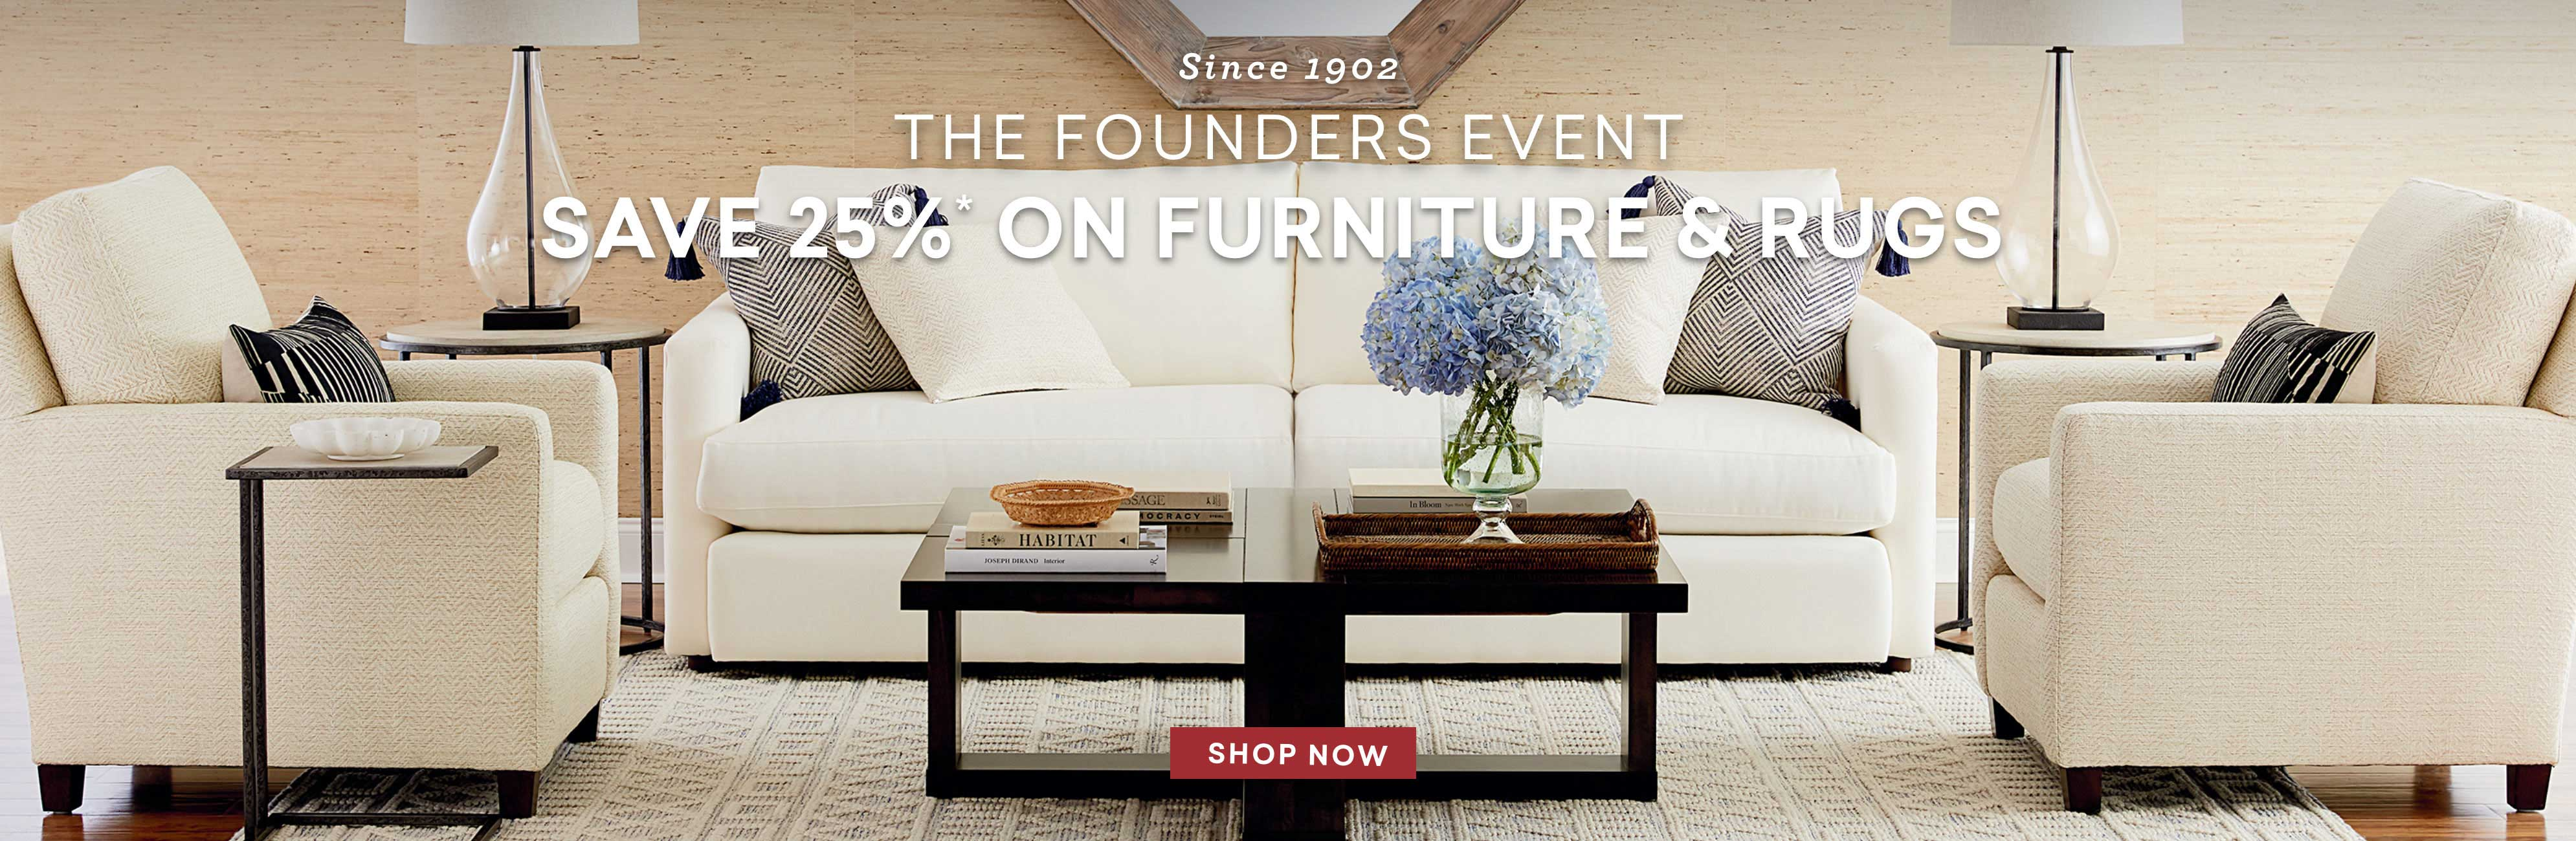 since 1902 the founders event save 25% off furniture and rugs Desktop